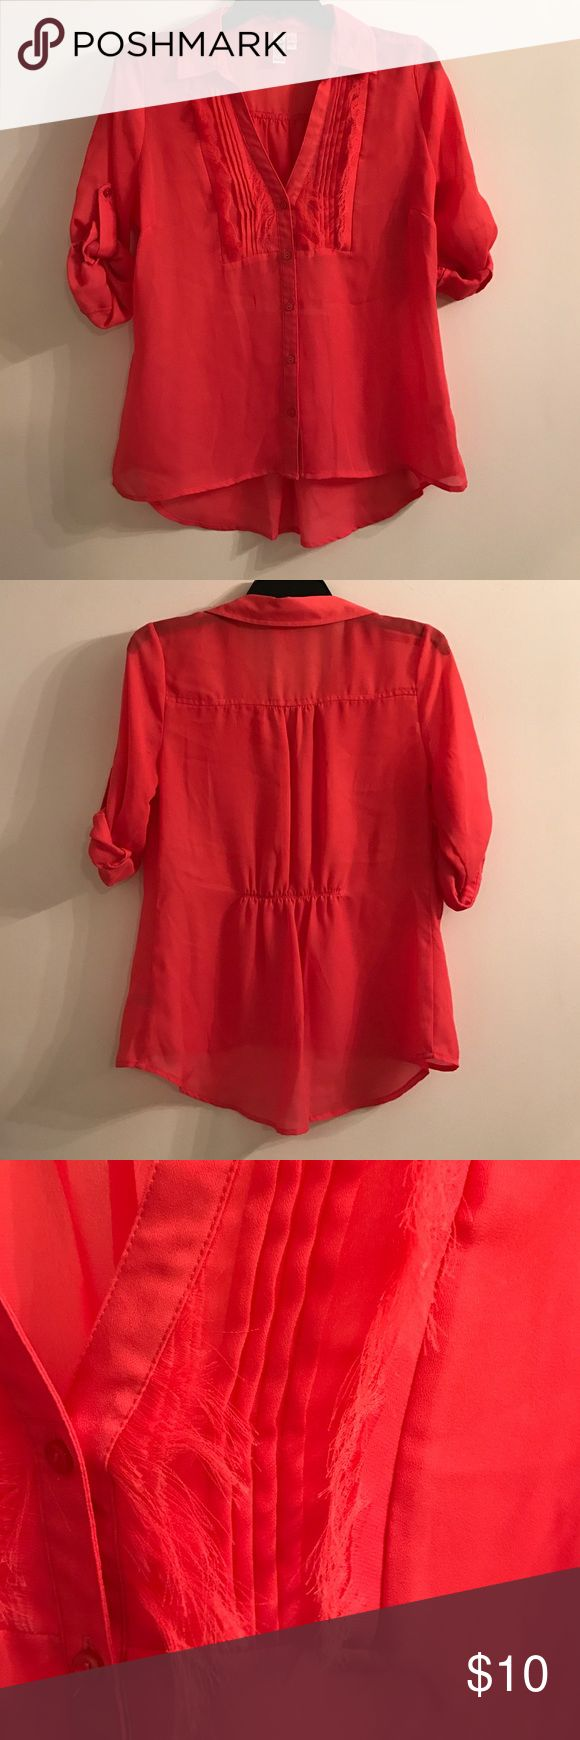 Medium Coral Blouse Sheer coral blouse with fringe detail. Worn once! Tops Blouses